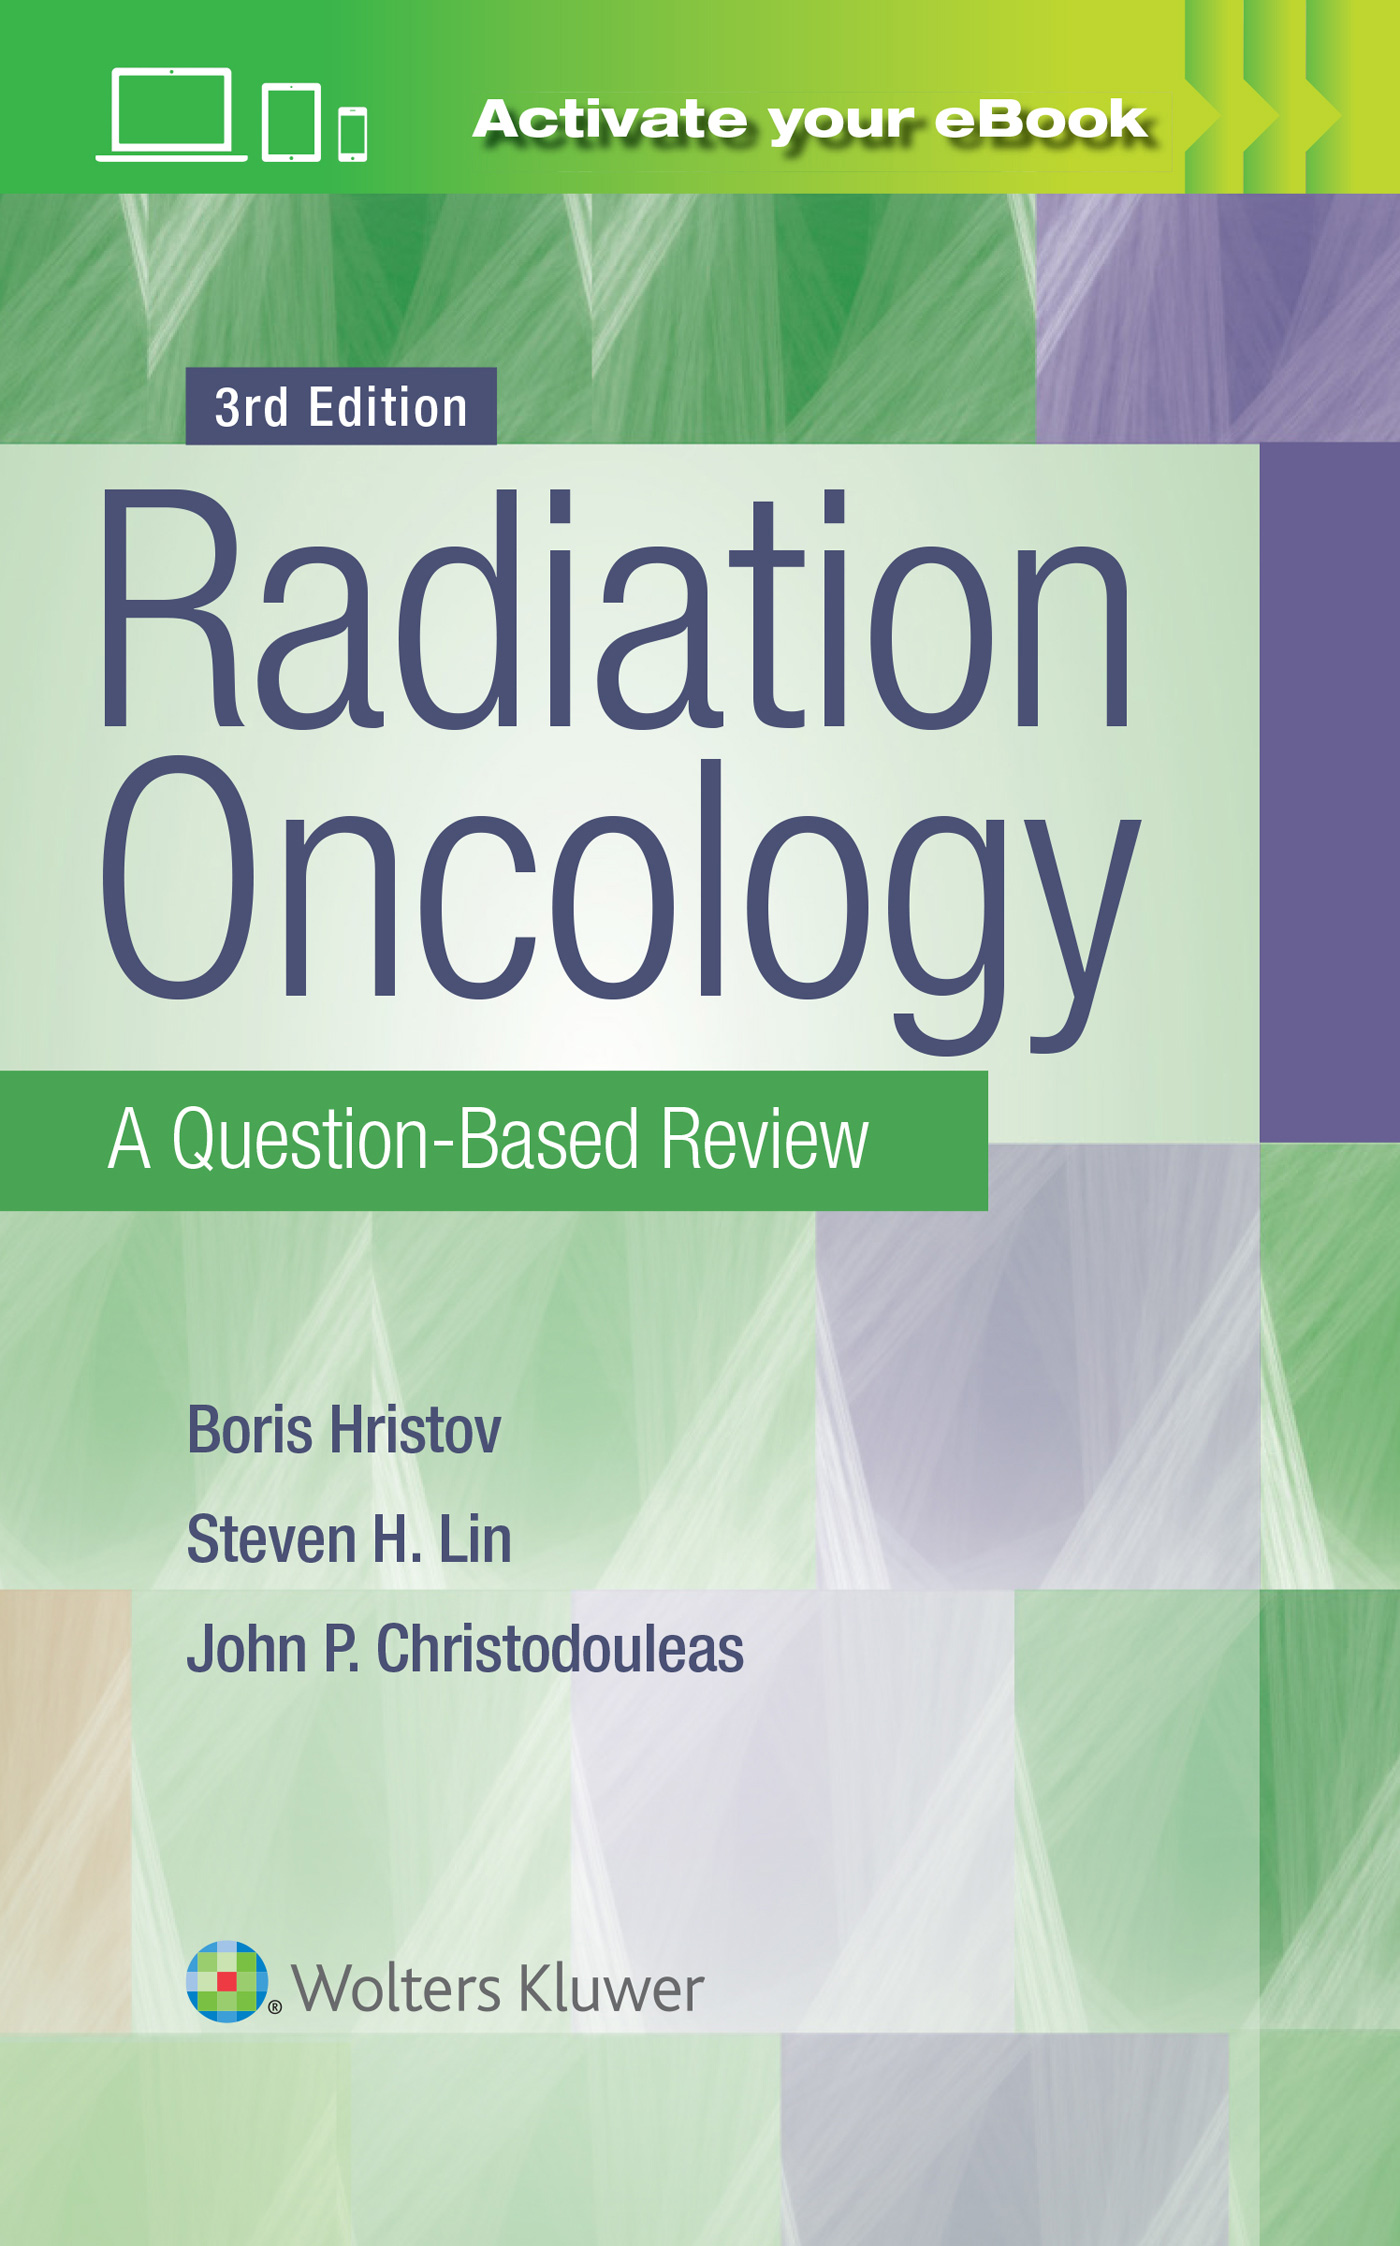 Radiation Oncology - A Question-Based Review